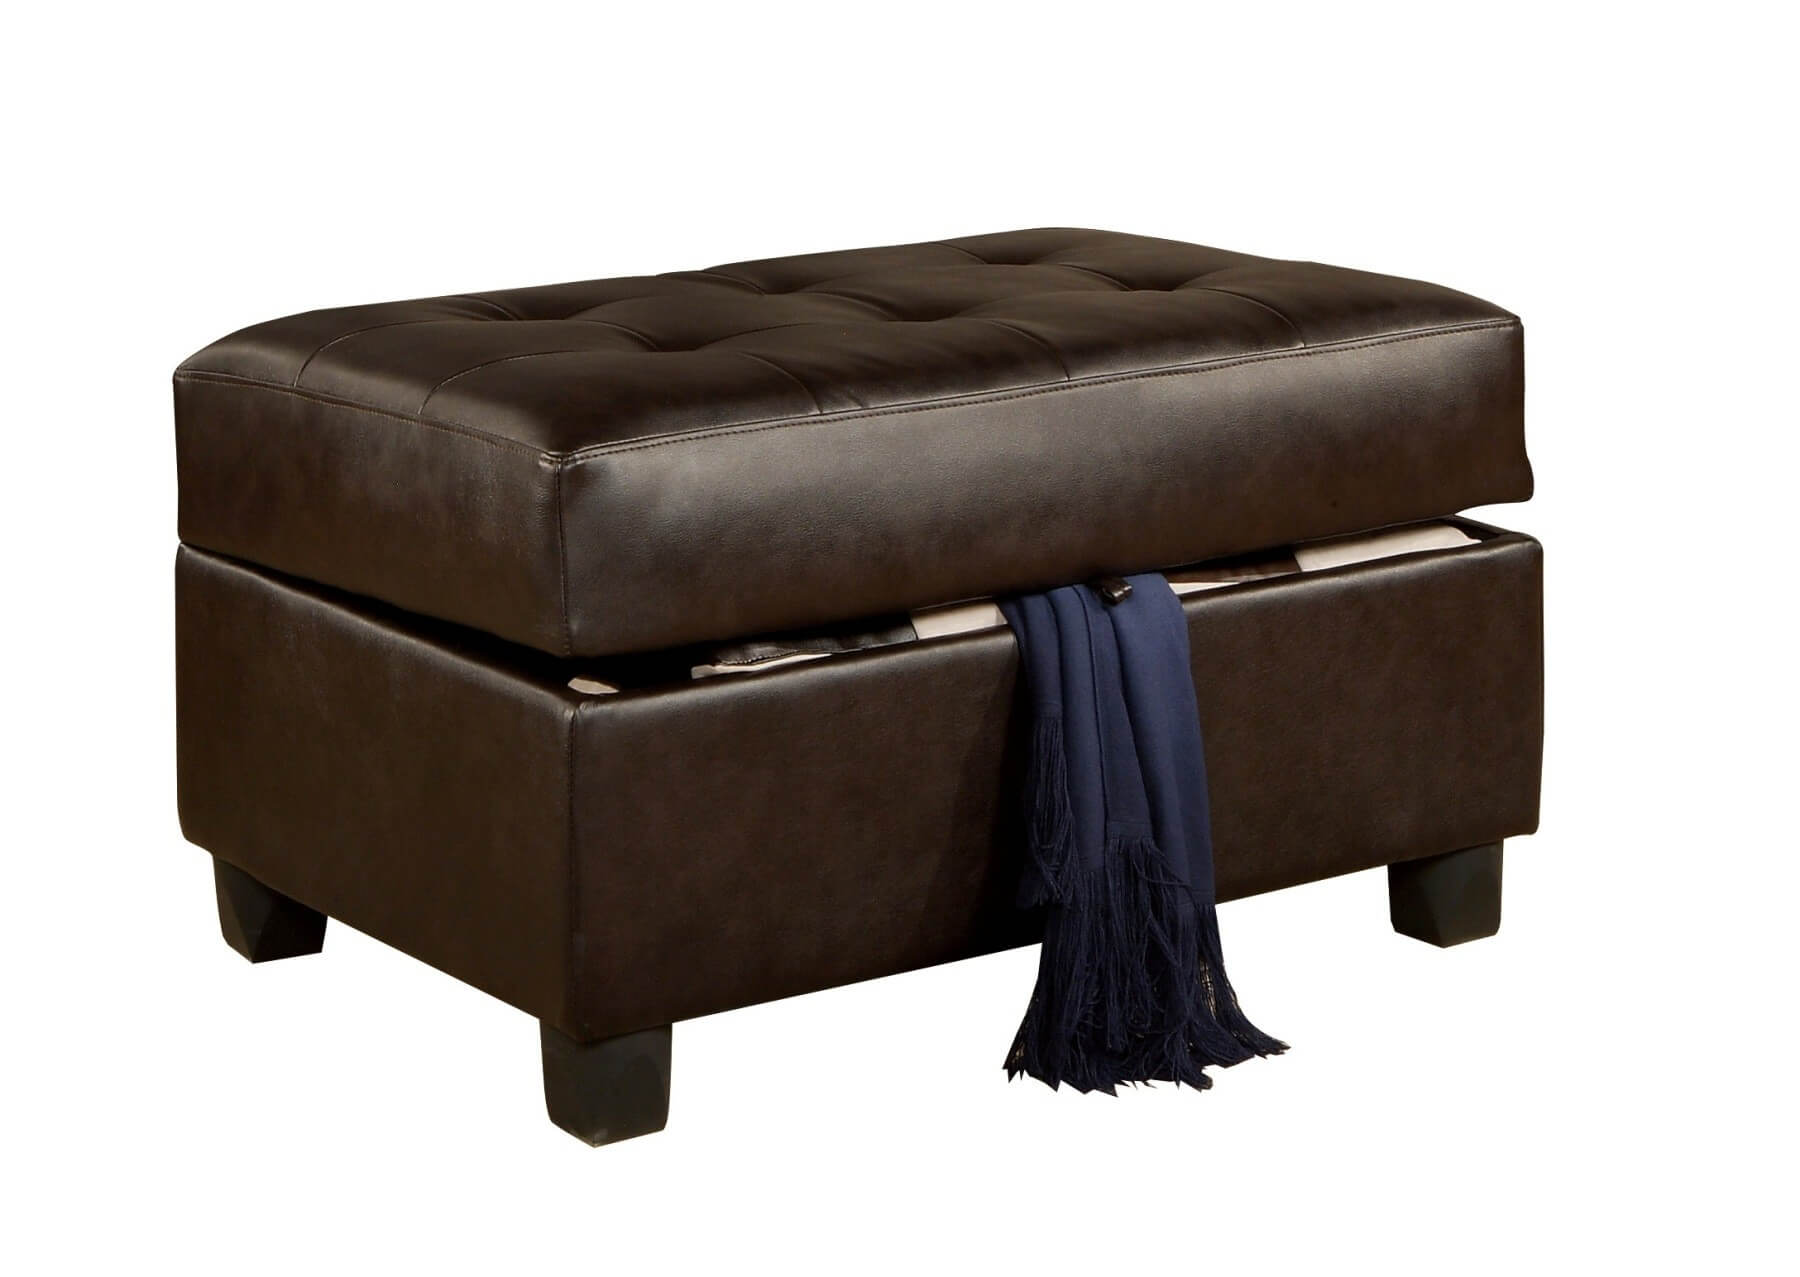 This dark bonded leather ottoman from Poundex features large button tufted cushion concealing hatch for interior storage and dark wood legs.